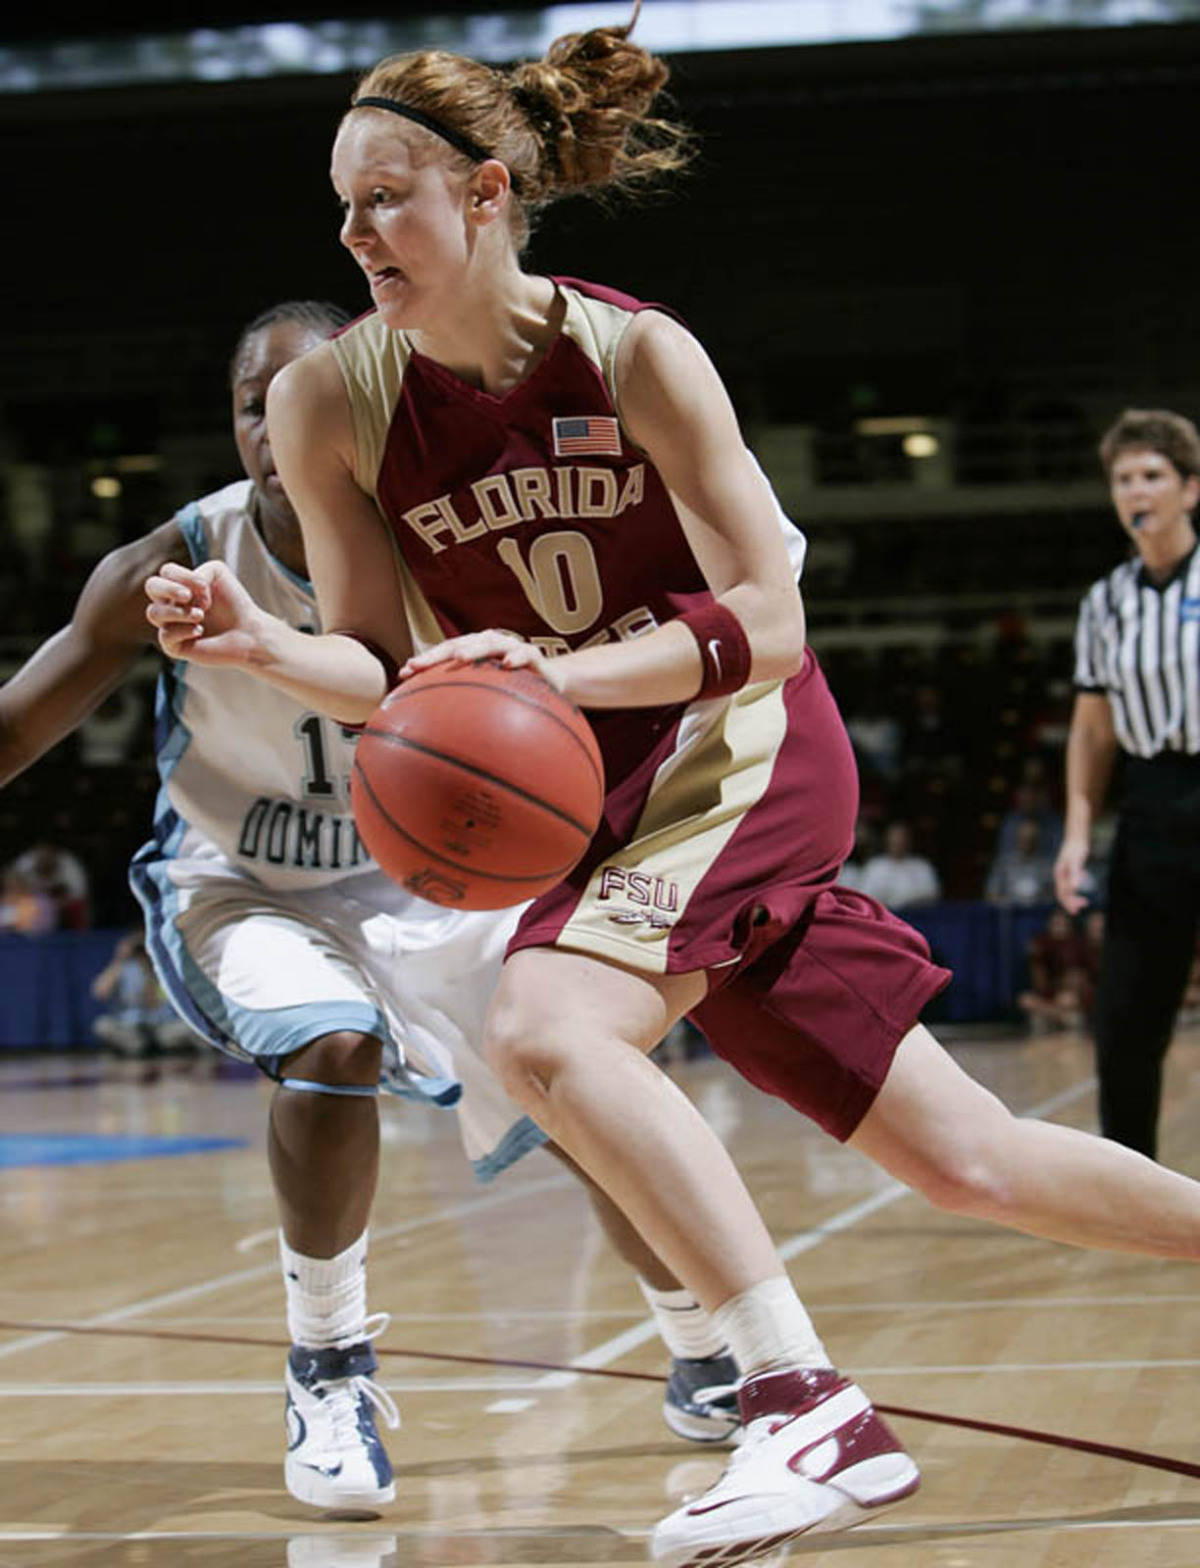 Mara Freshour had six assists and 12 points in the win over Old Dominion.